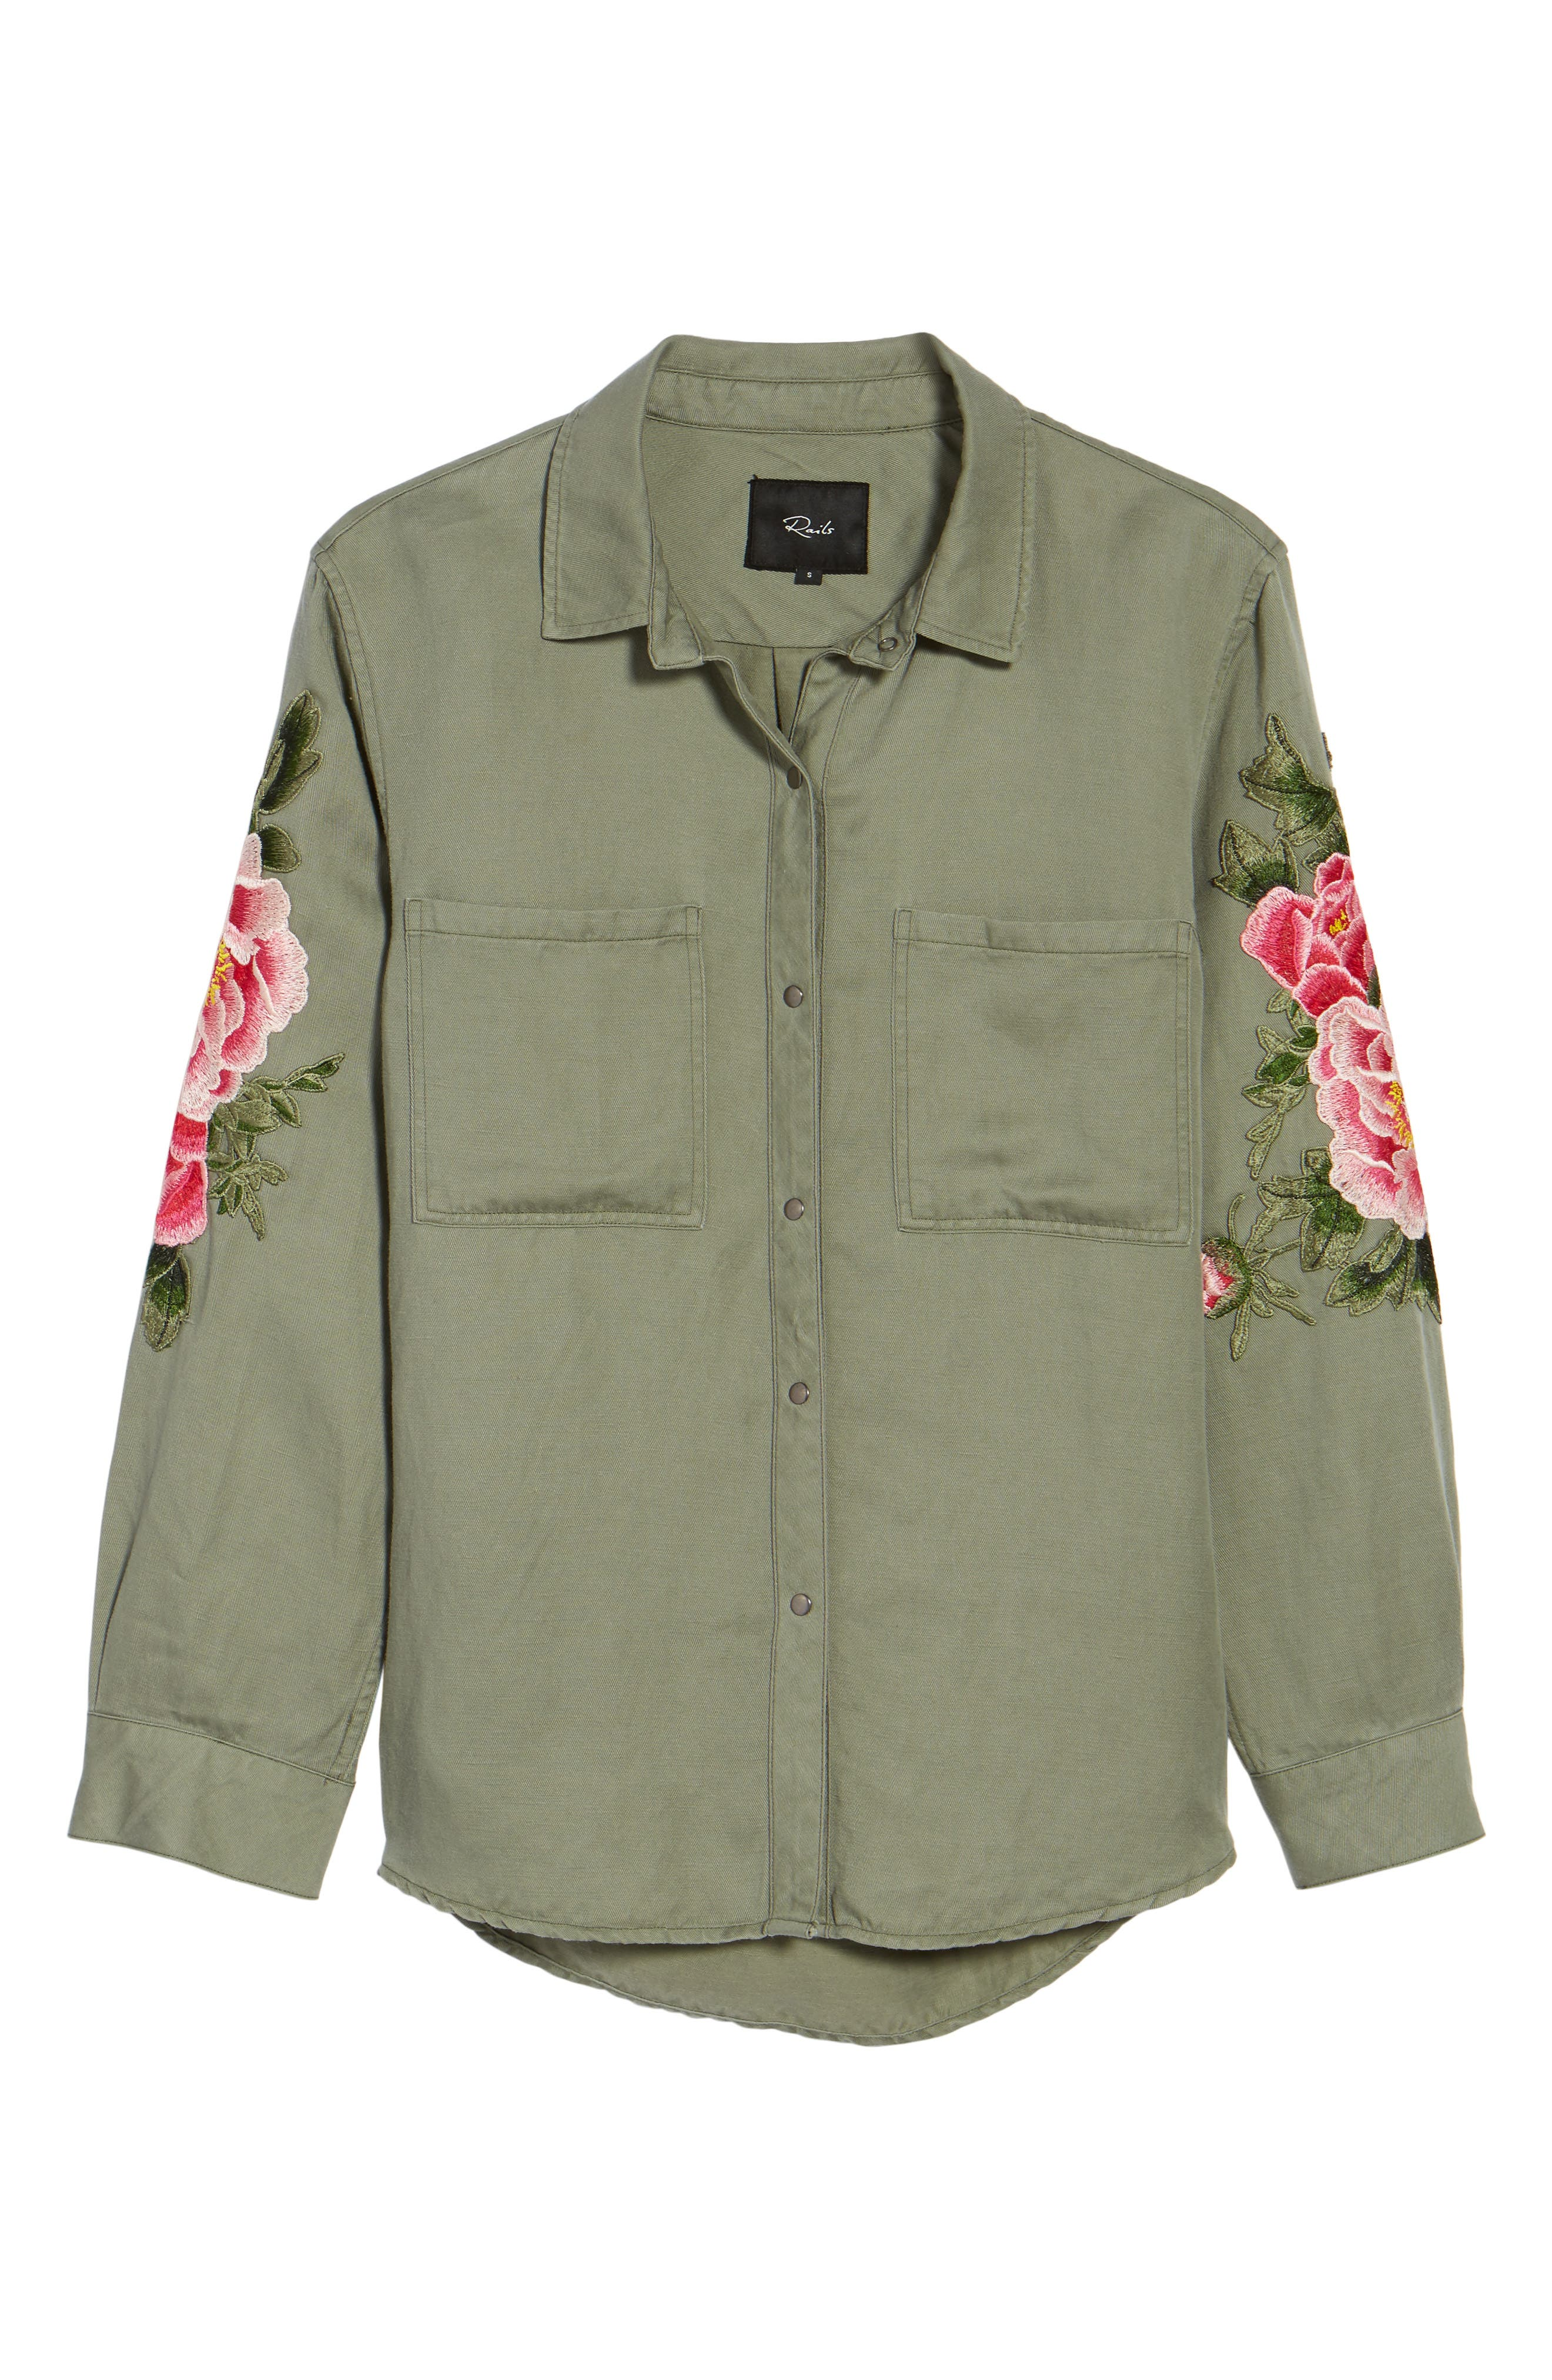 Marcel Embroidered Shirt,                             Alternate thumbnail 6, color,                             302